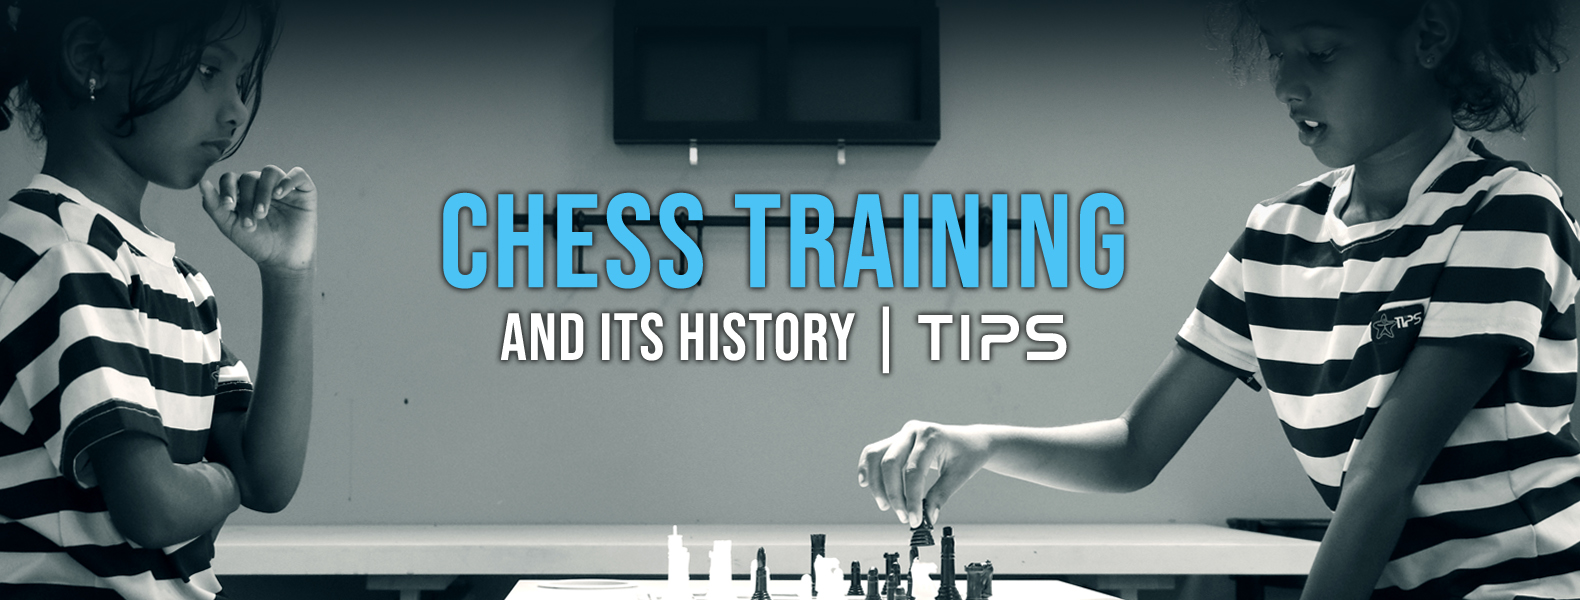 Chess Training and Its History TIPS